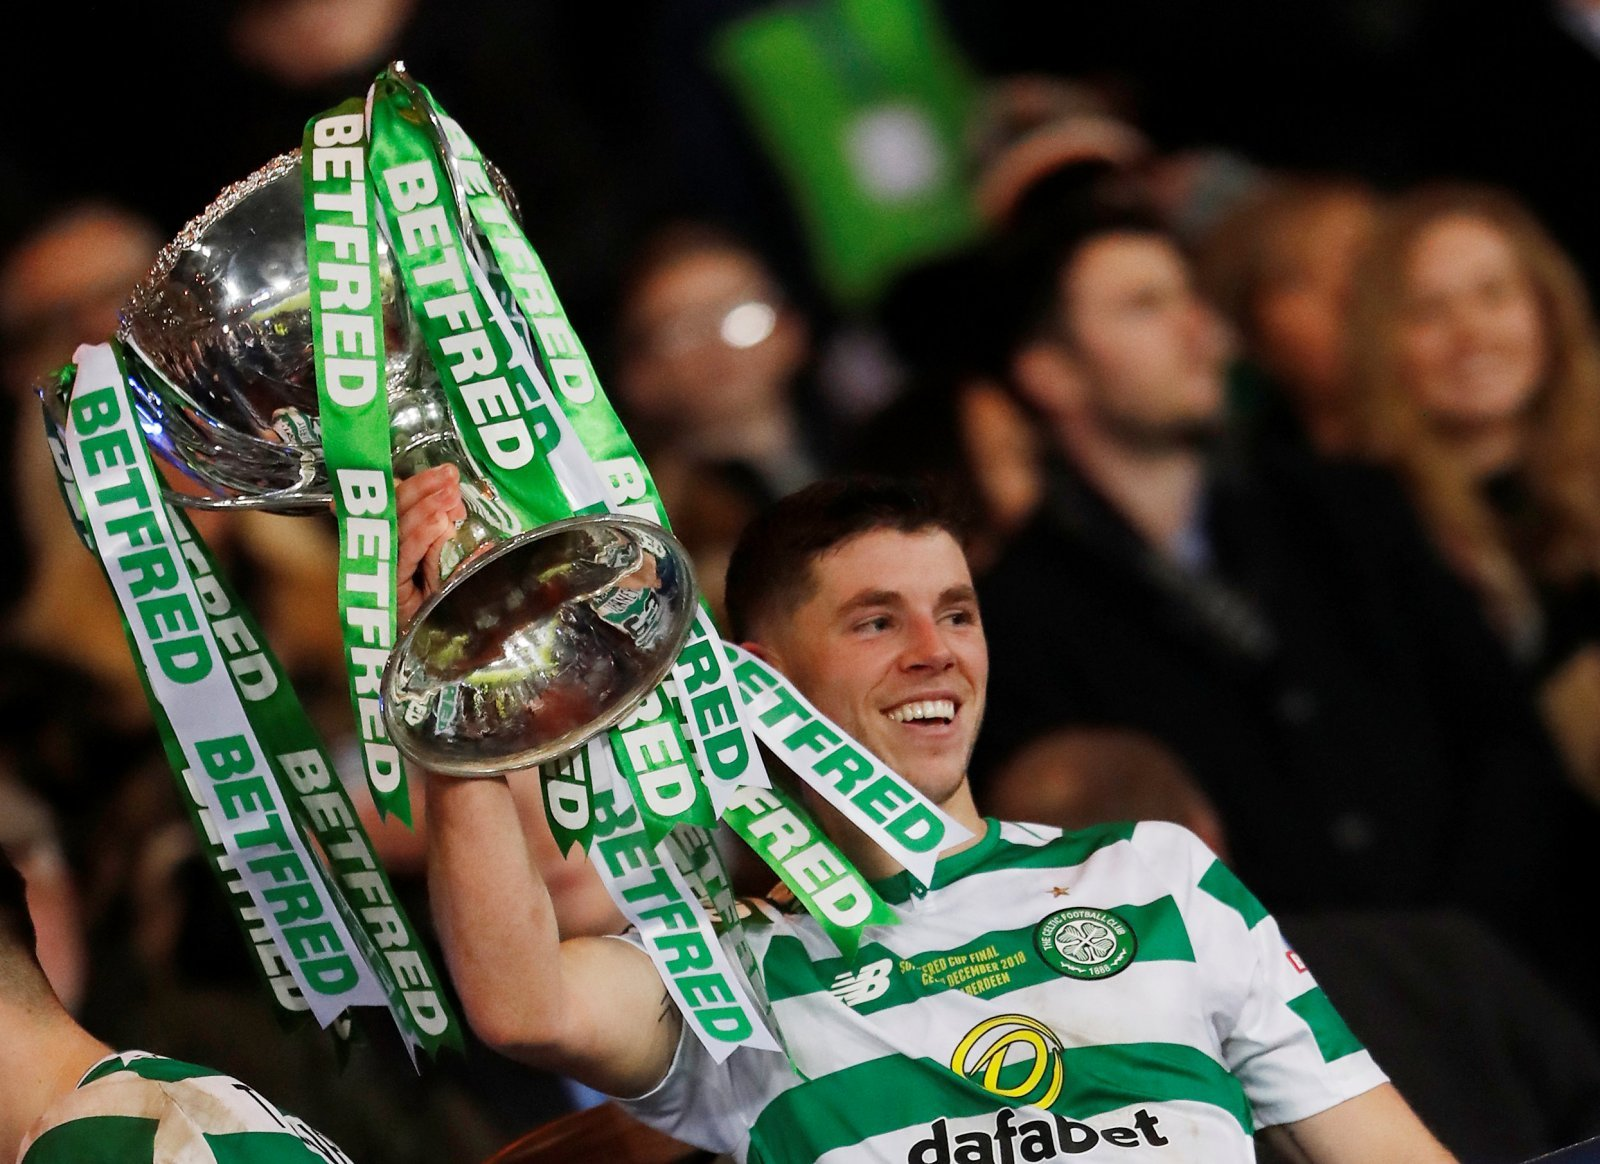 Introducing: The man to take Celtic forward, Ryan Christie